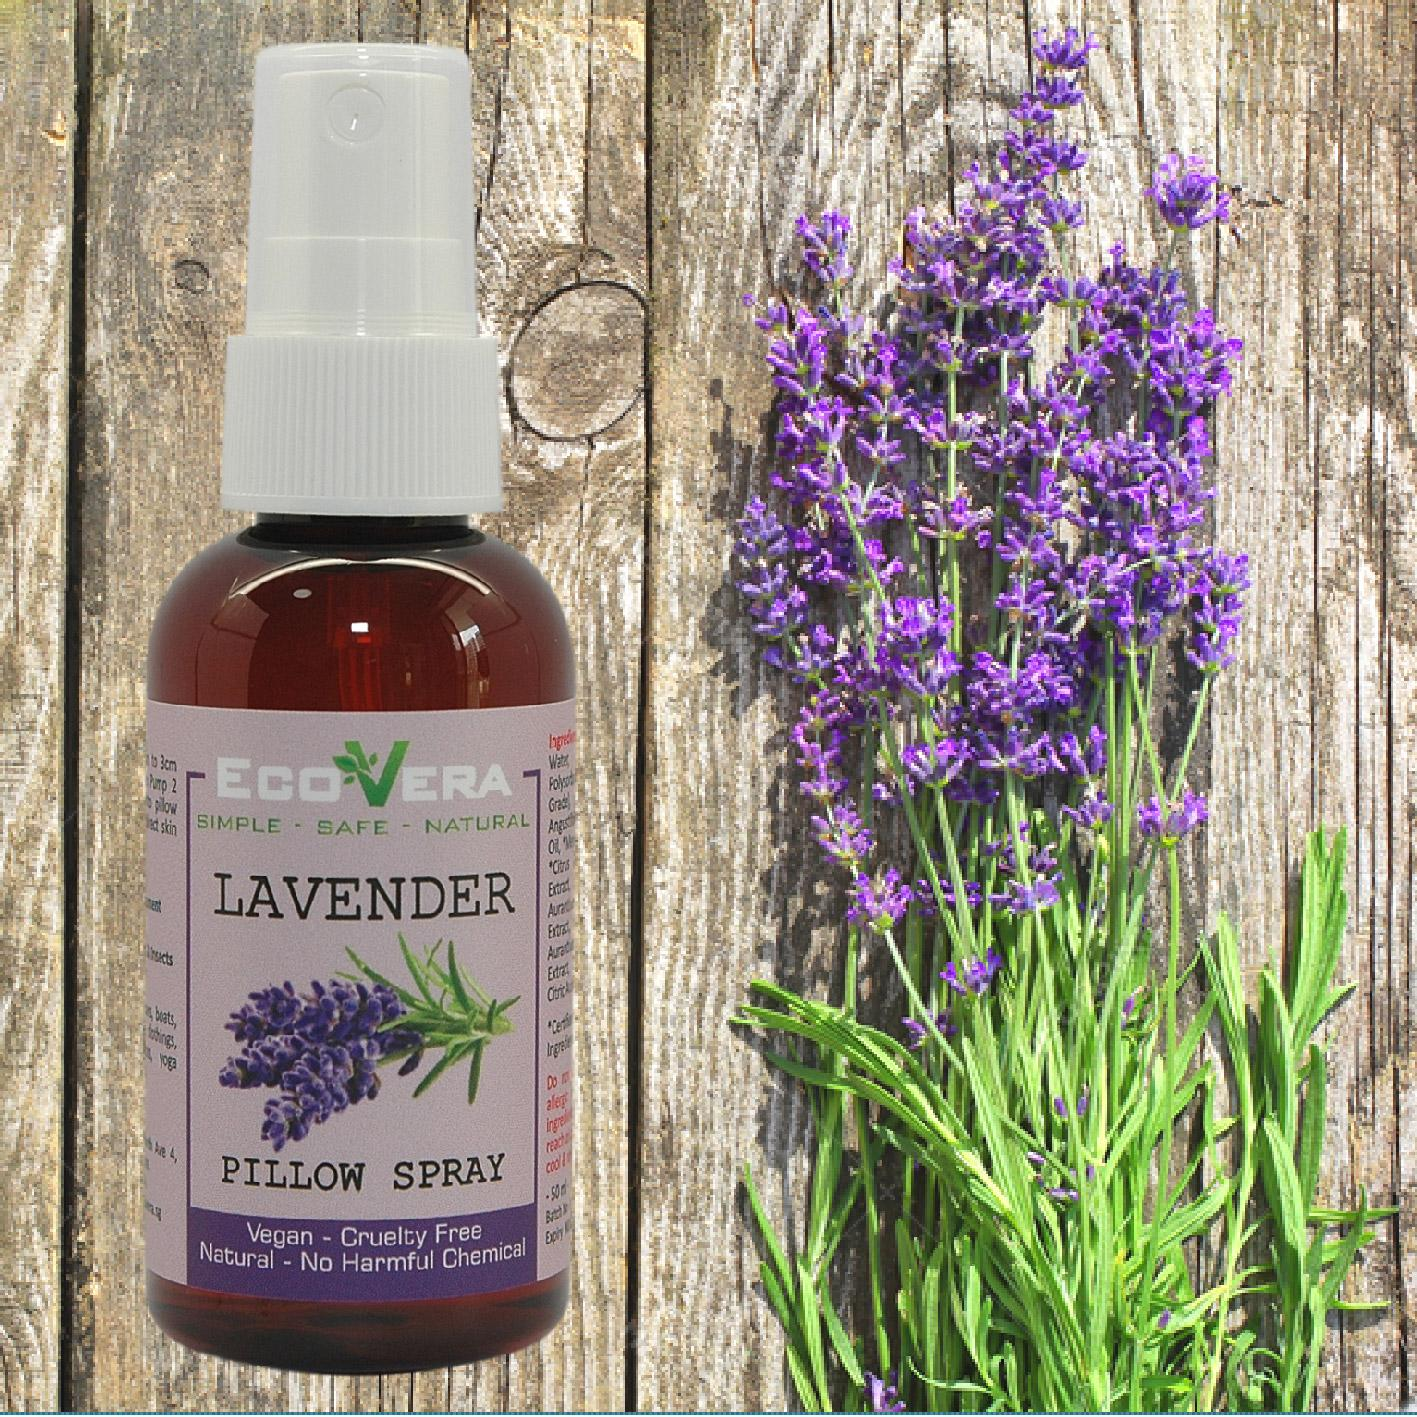 Pillow Spray - Lavender Essential Oil - Antimicrobial By Yk Natural.